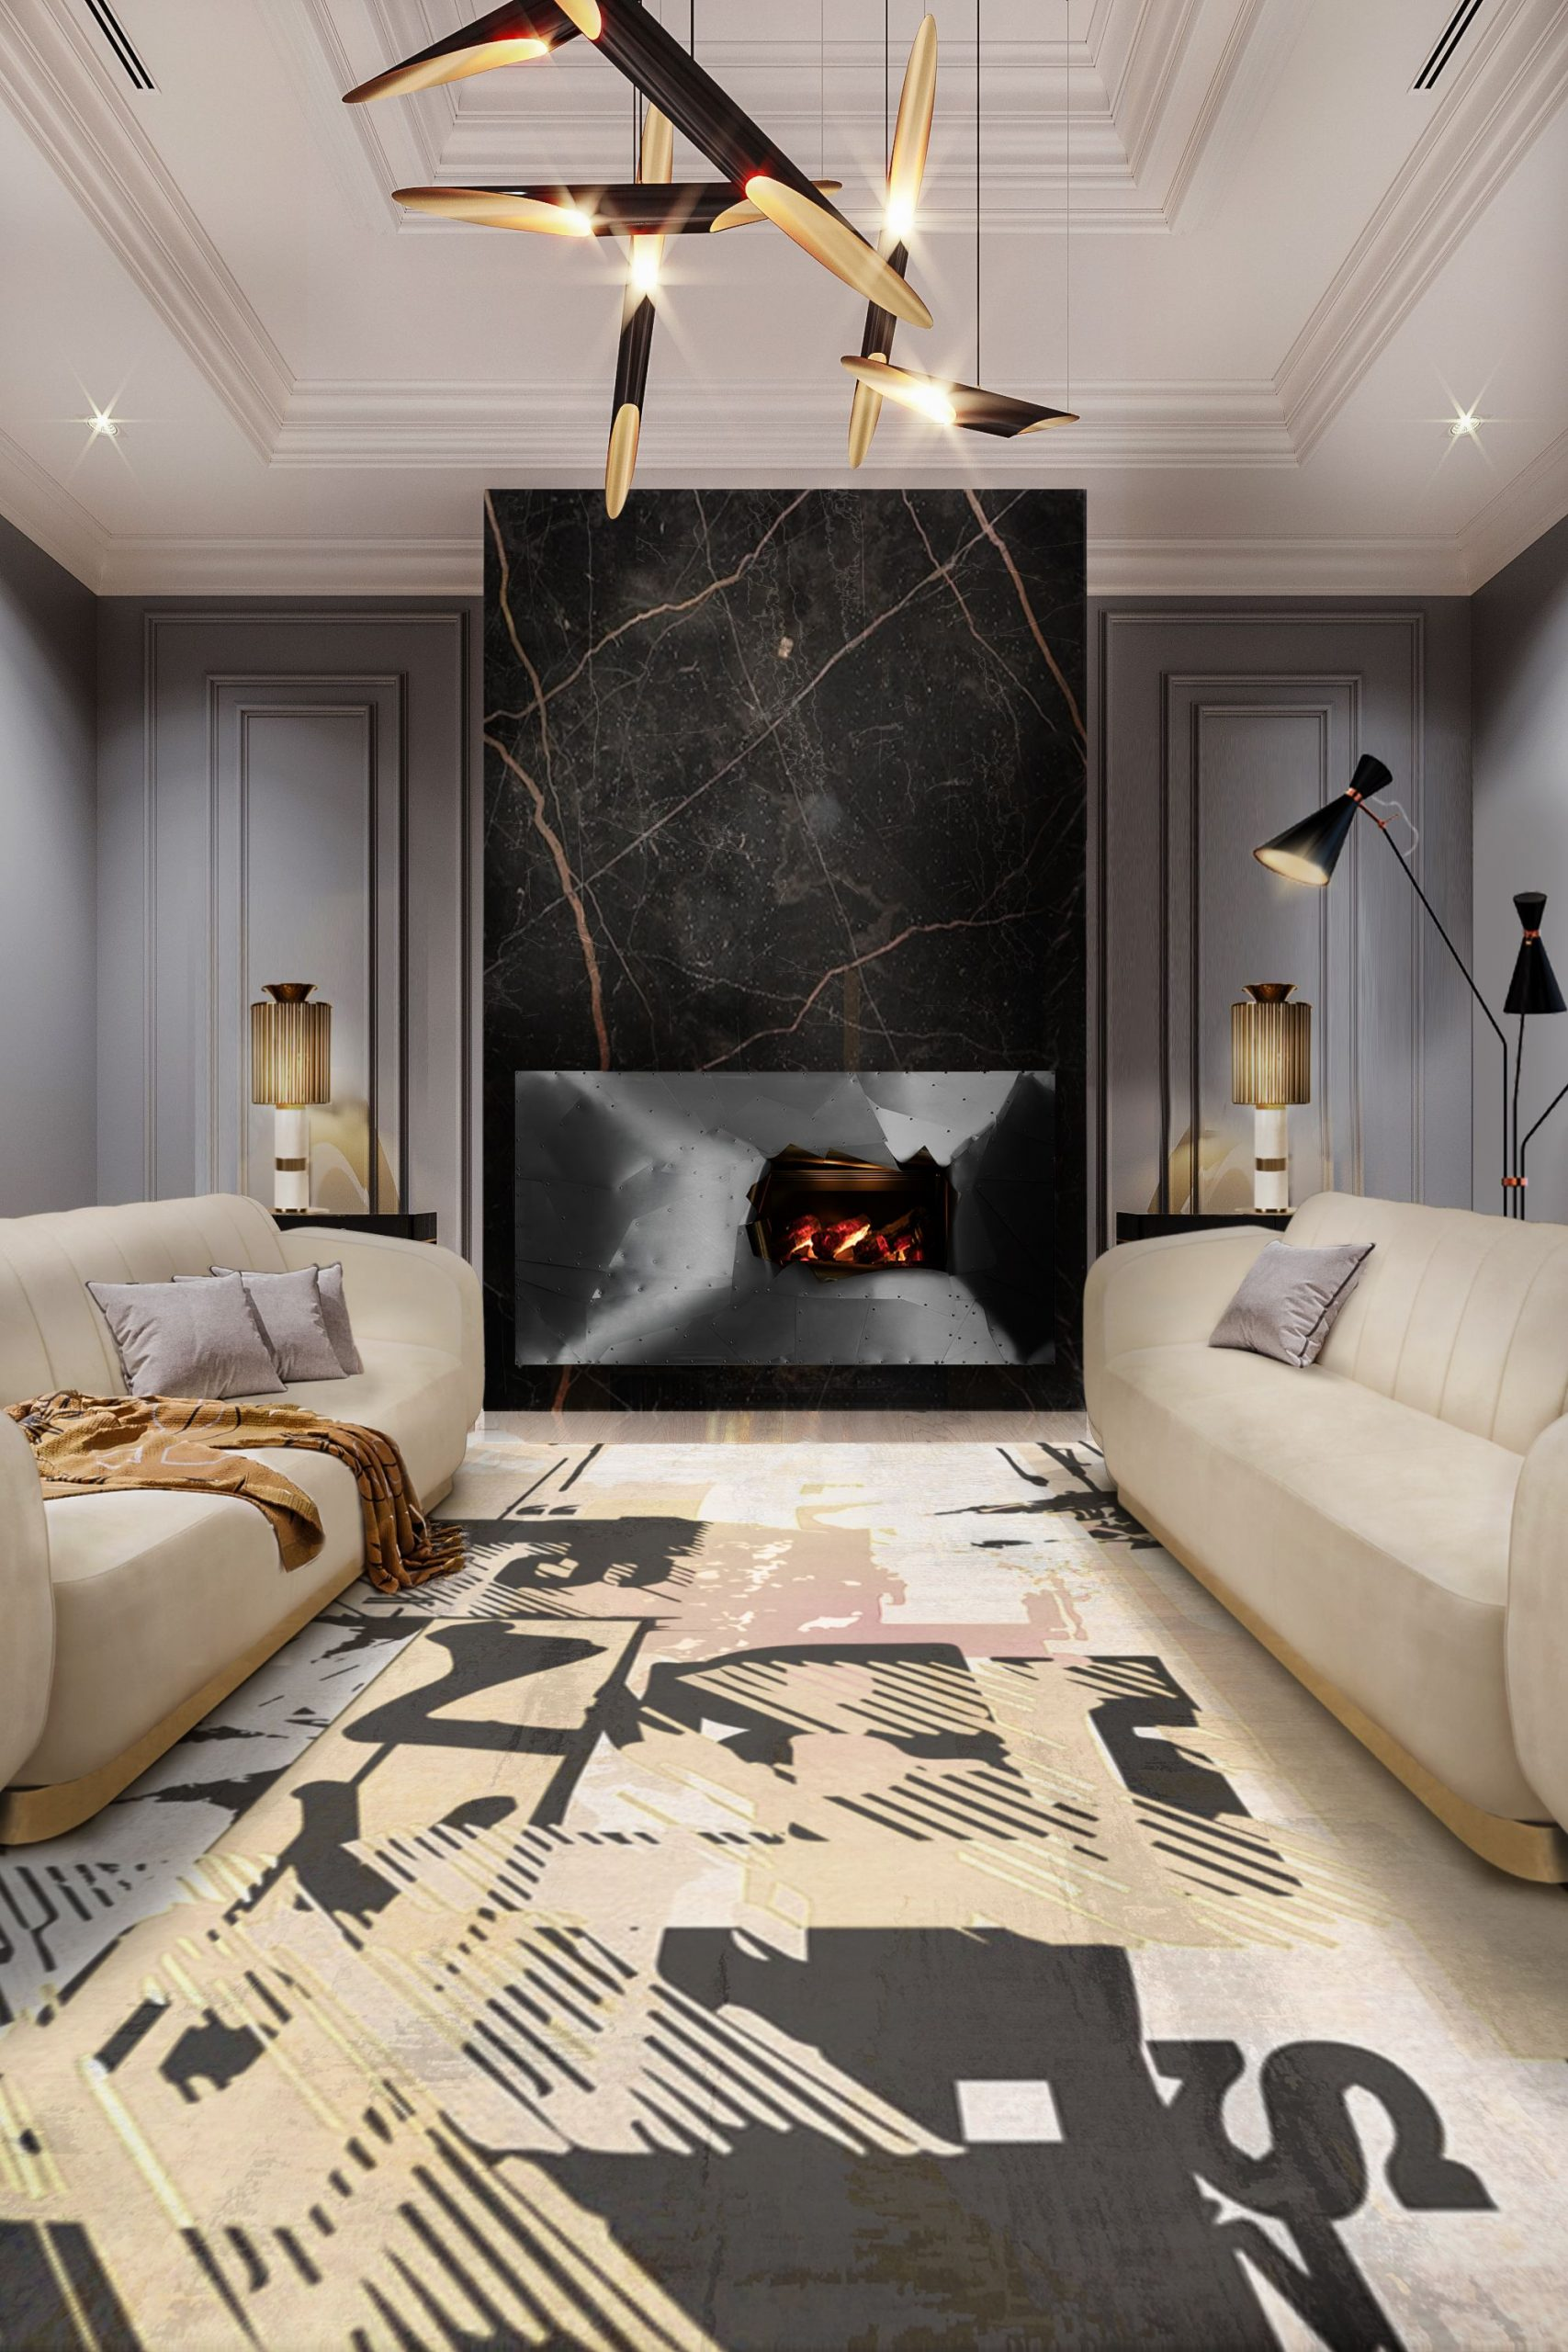 Modern Design Ideas For Your Home You Need To Discover!